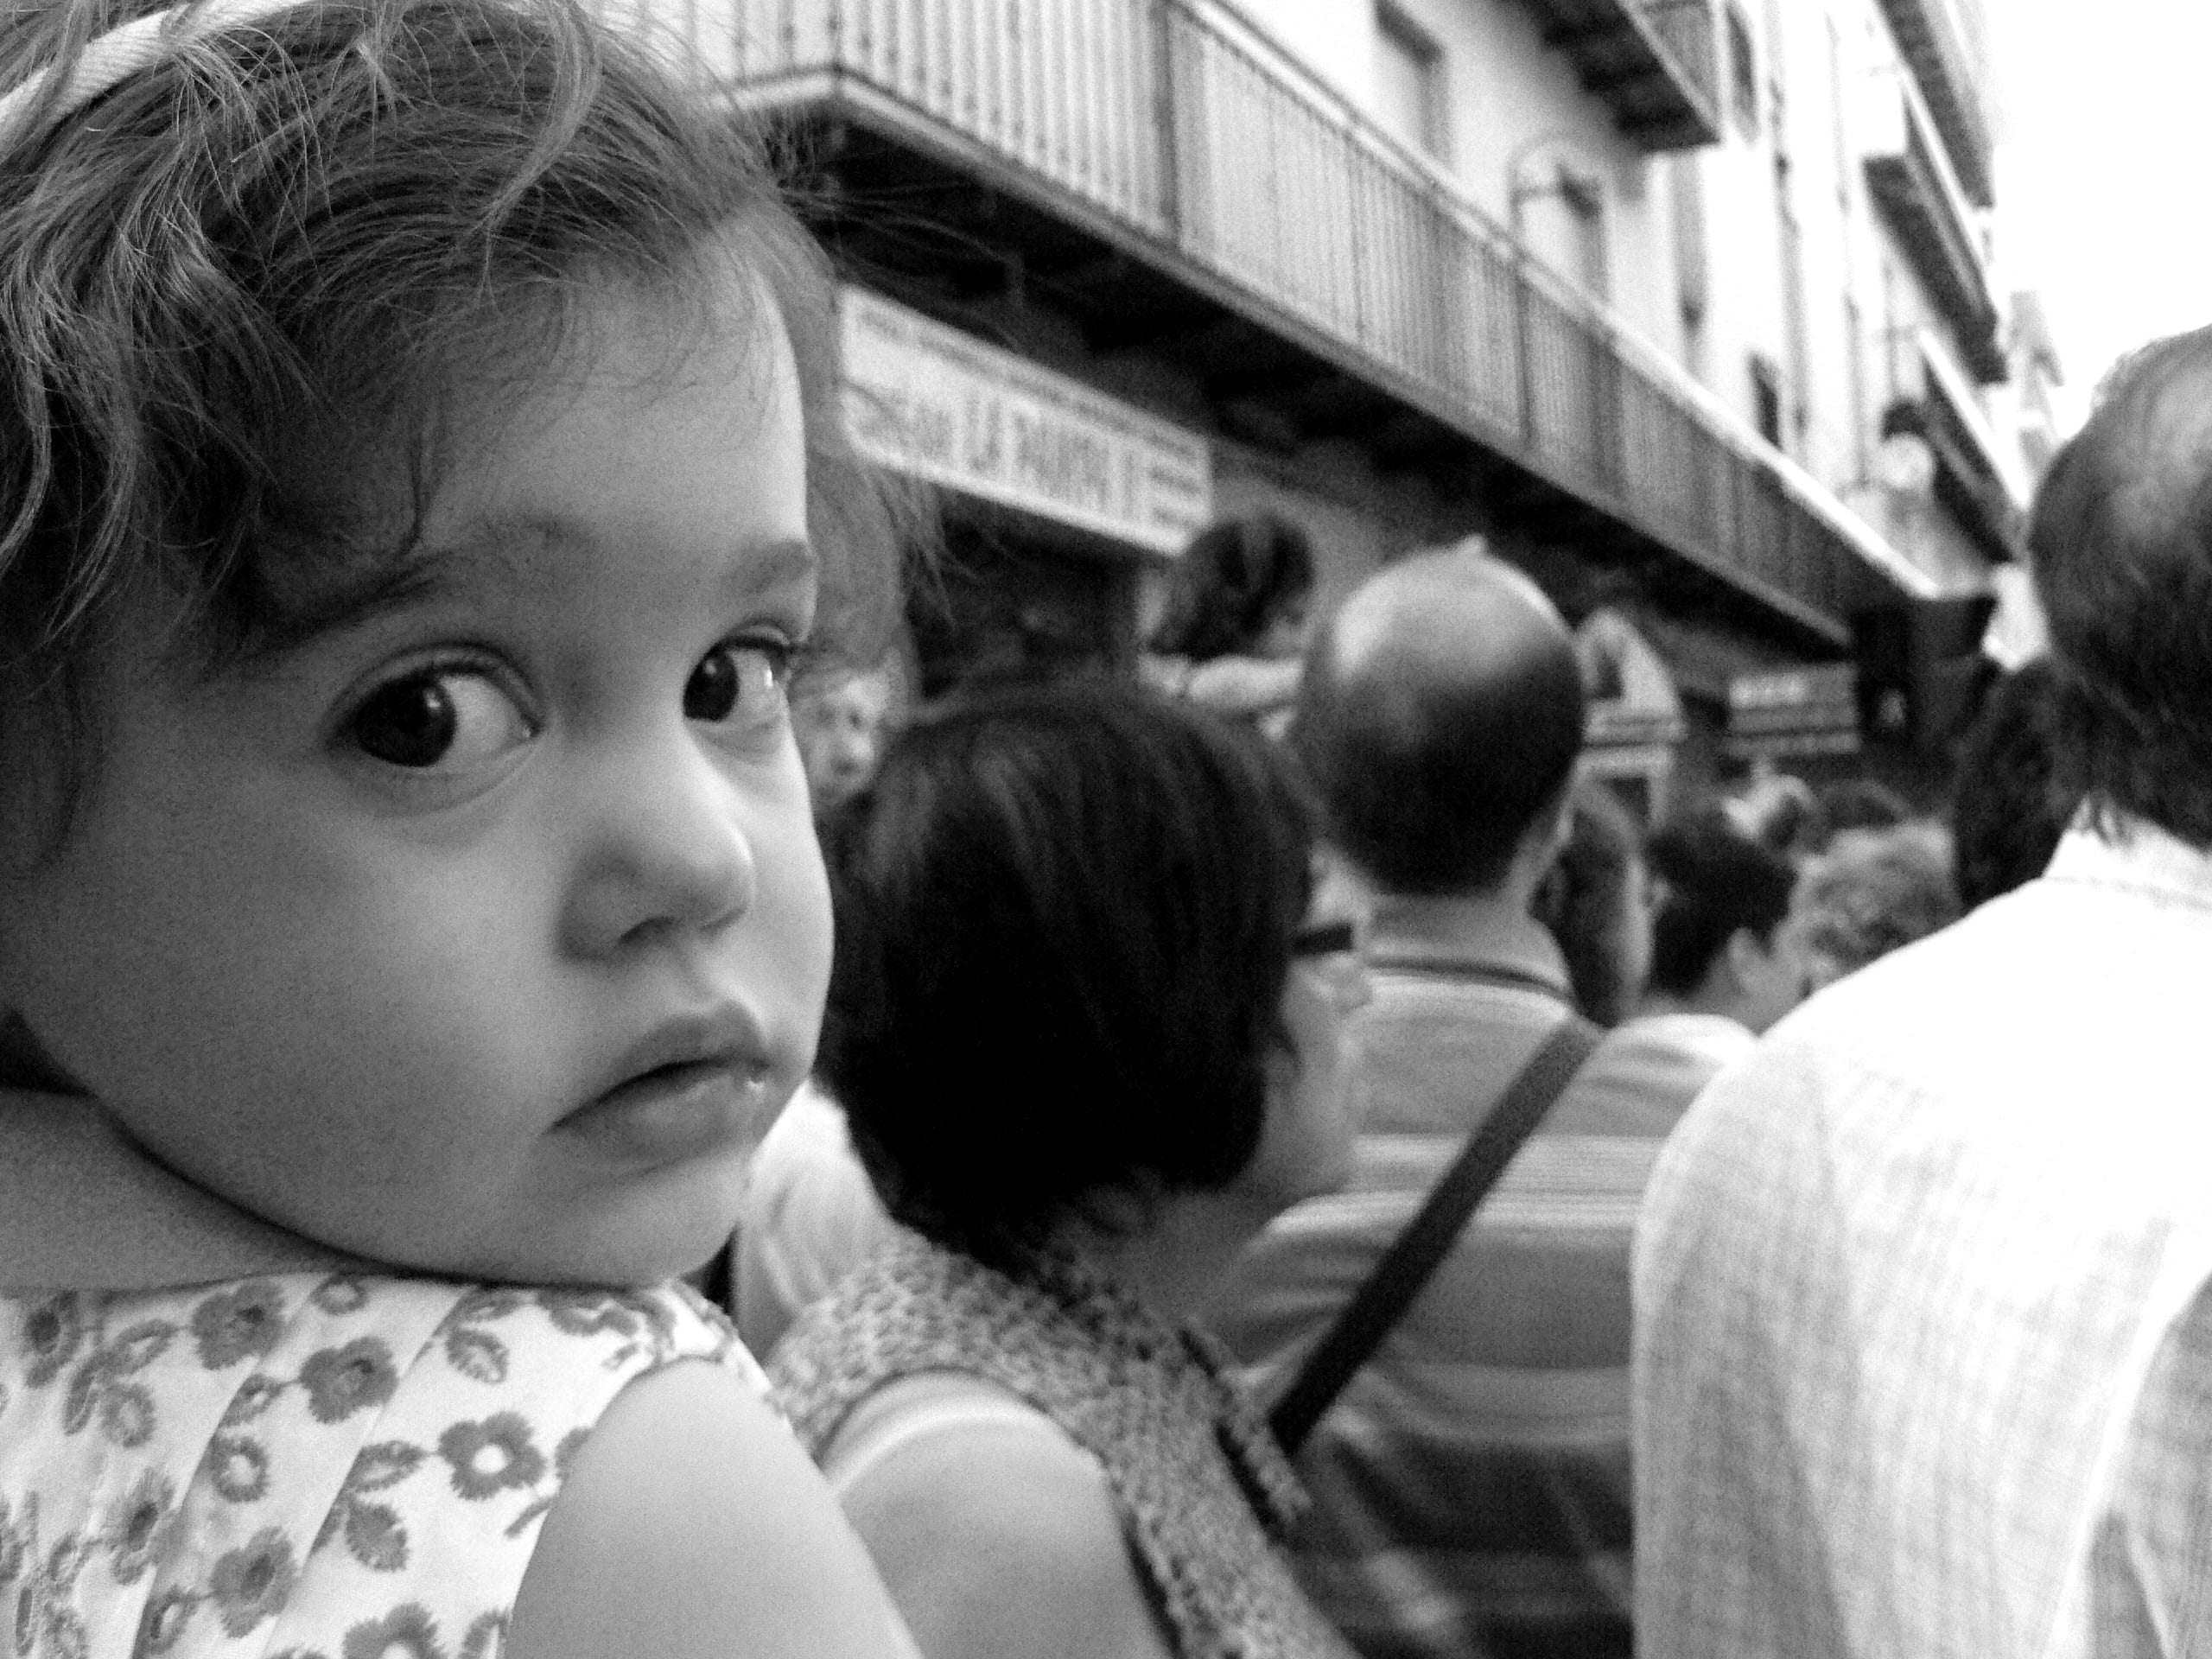 A young girl looking over her shoulder at the camera.